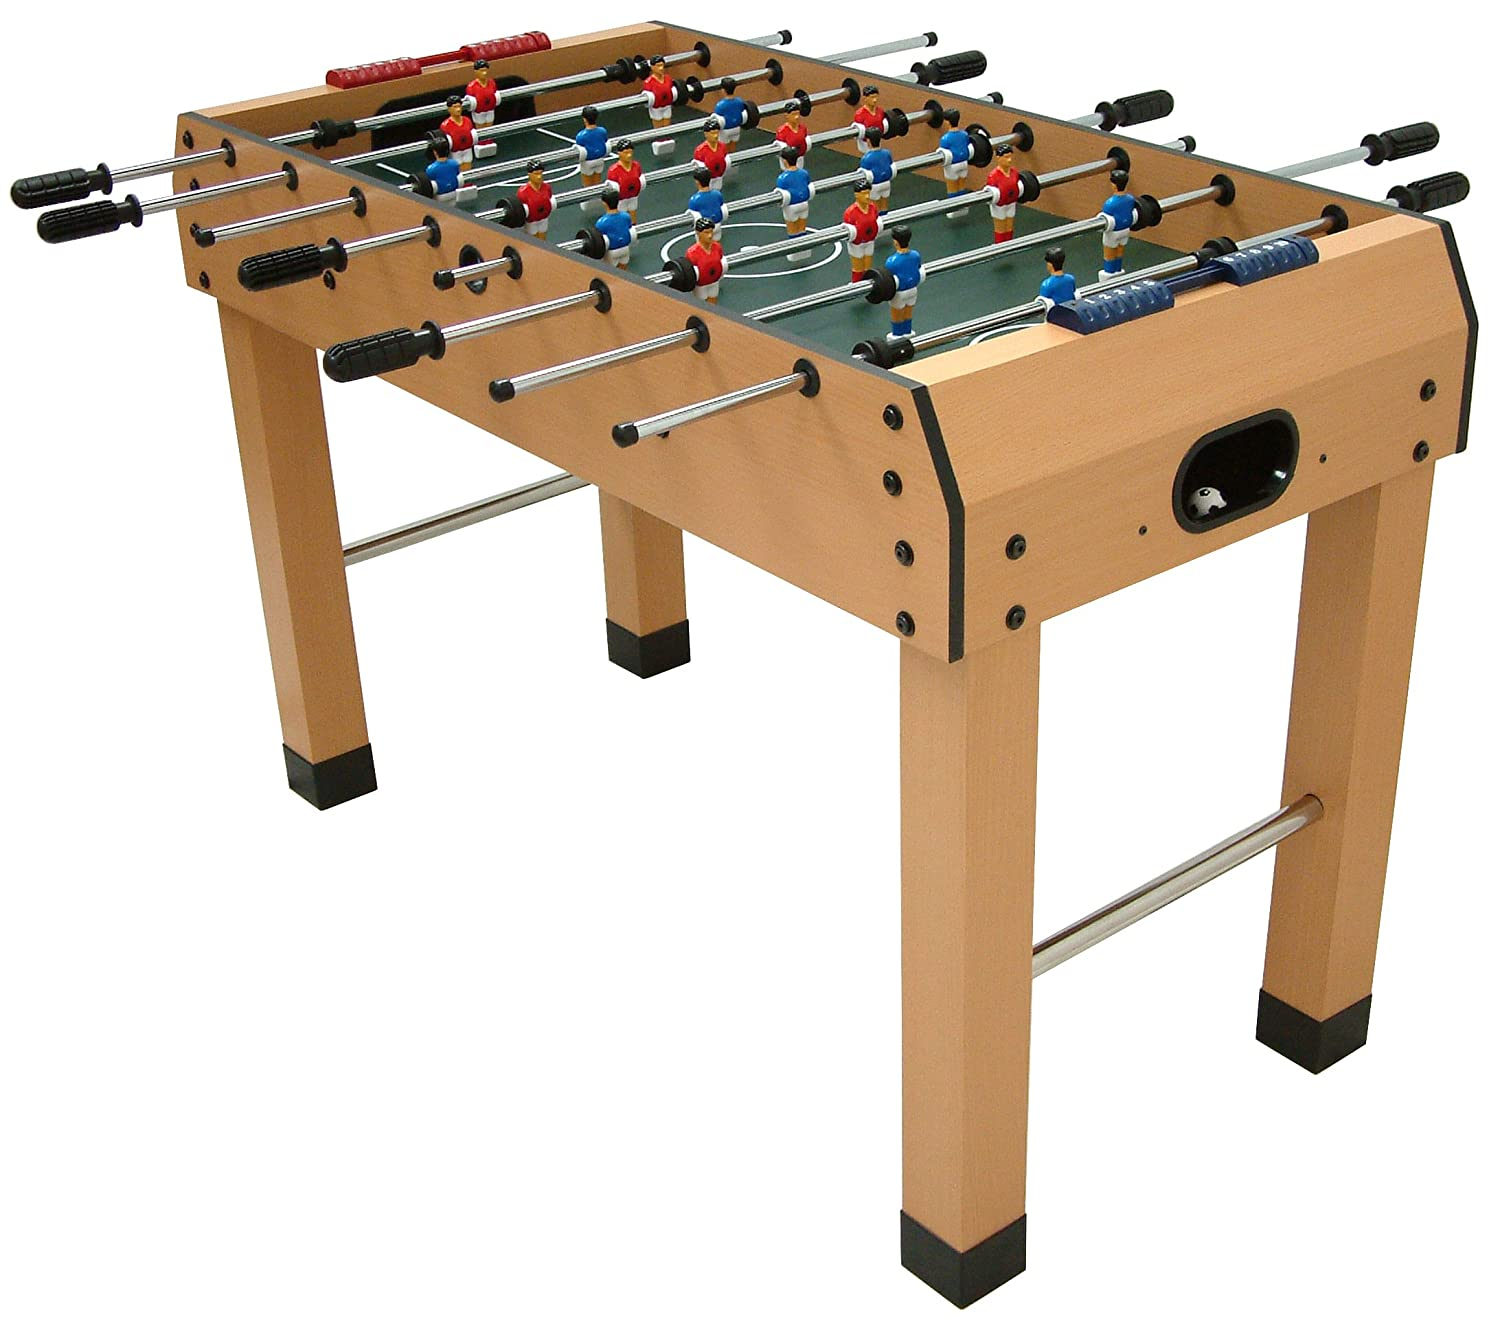 Top 20 Best Foosball Soccer Table Reviews 2019 2020 On